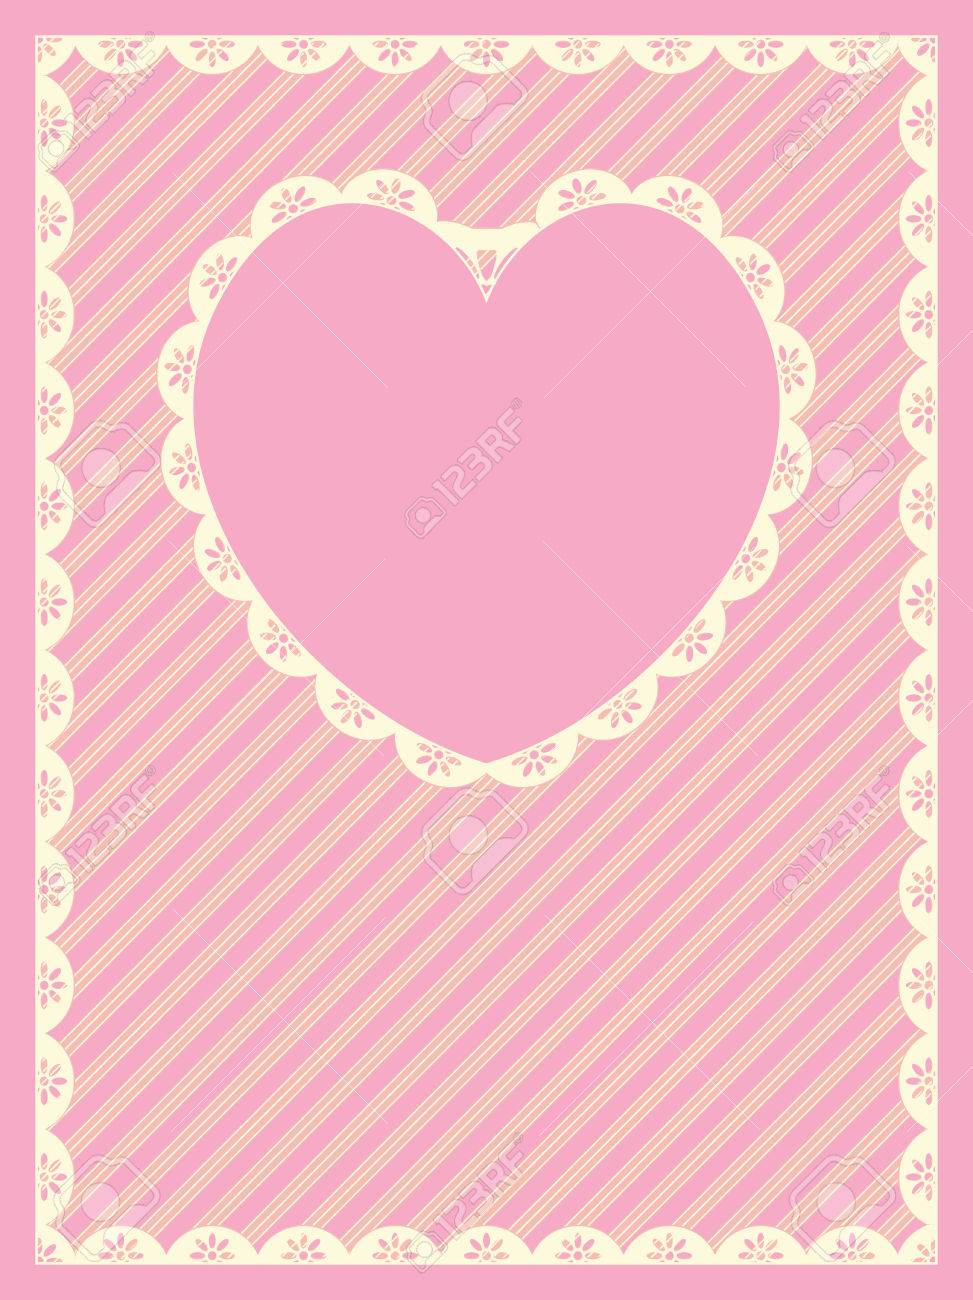 in pink, gold and ecru stripes with Victorian eyelet trim &amp, a heart shaped copy space. - 6325568